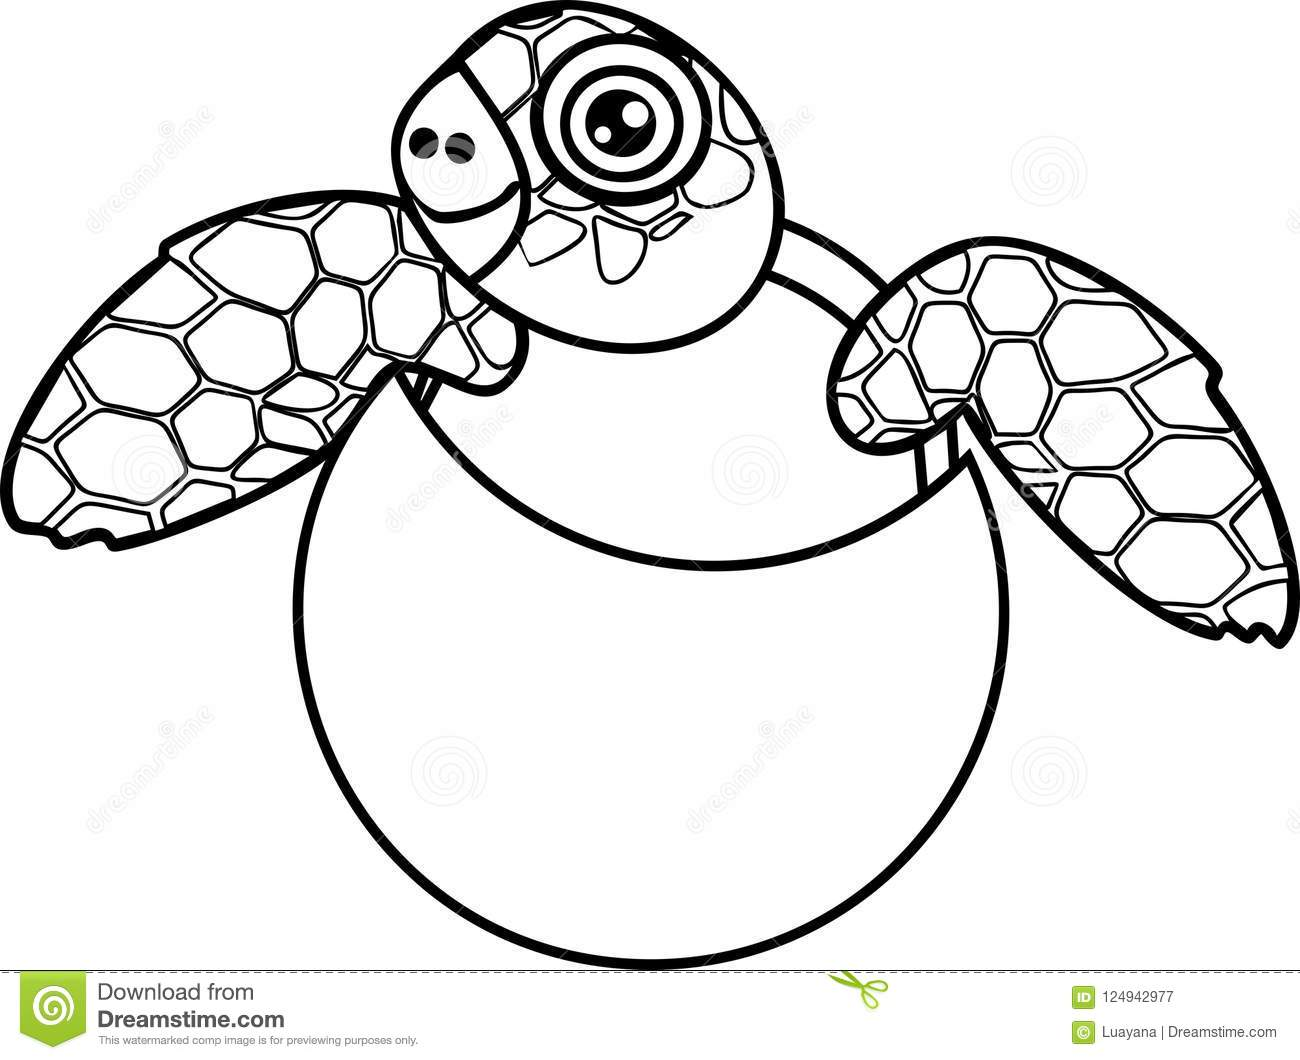 Coloring Page Cute Cartoon Sea Turtle Hatching Out Of Egg